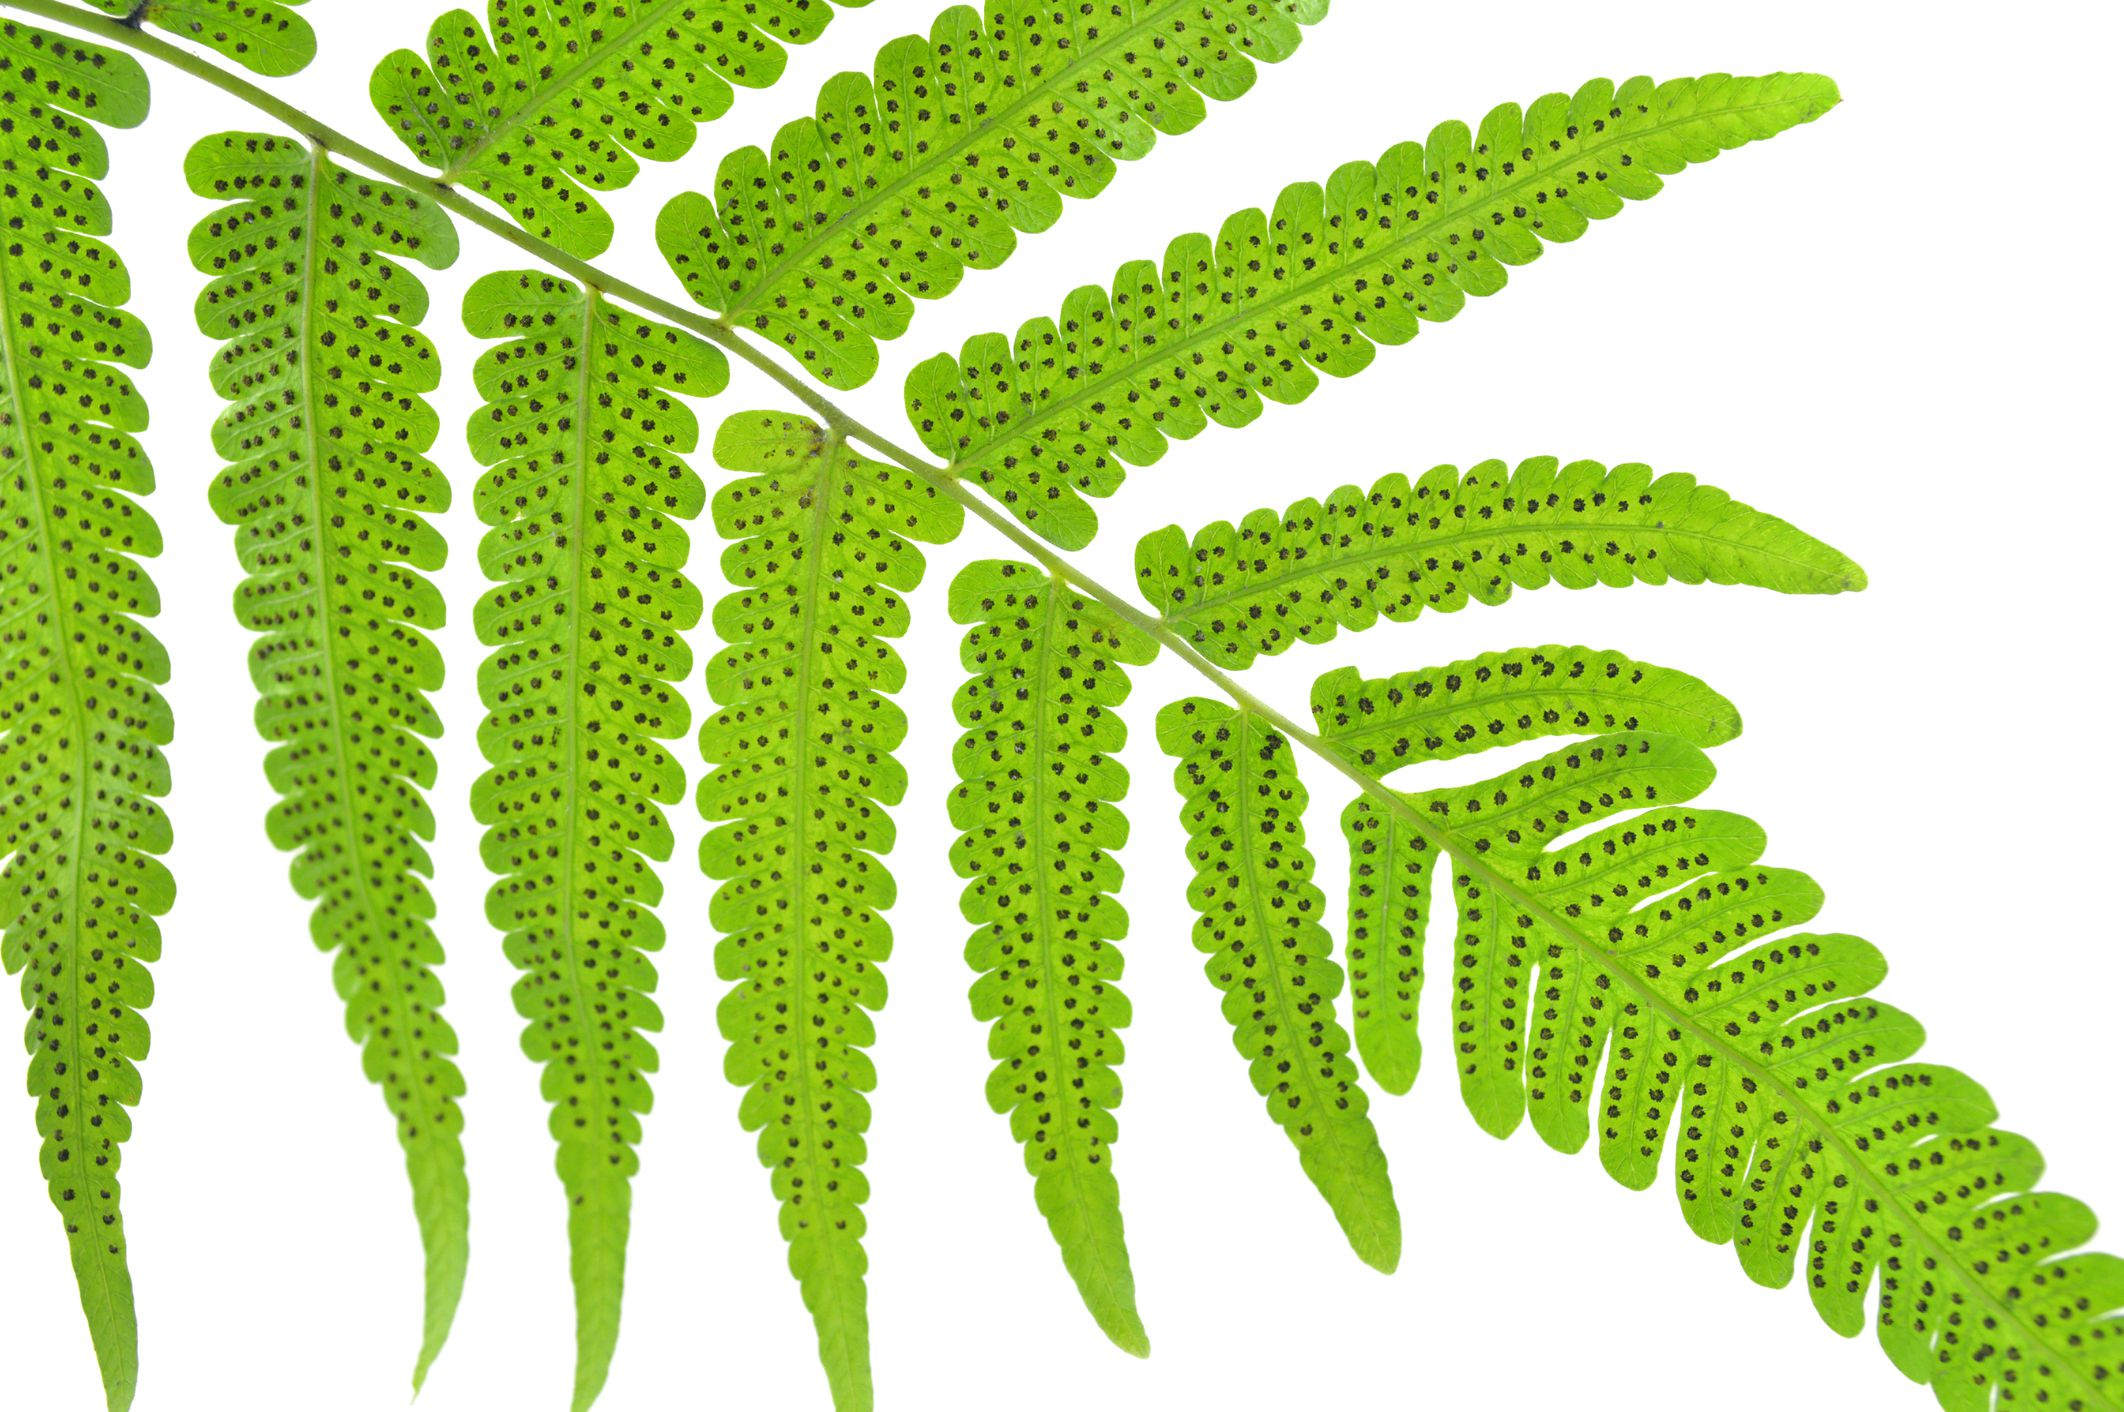 Fern Reproduction And Life Cycle